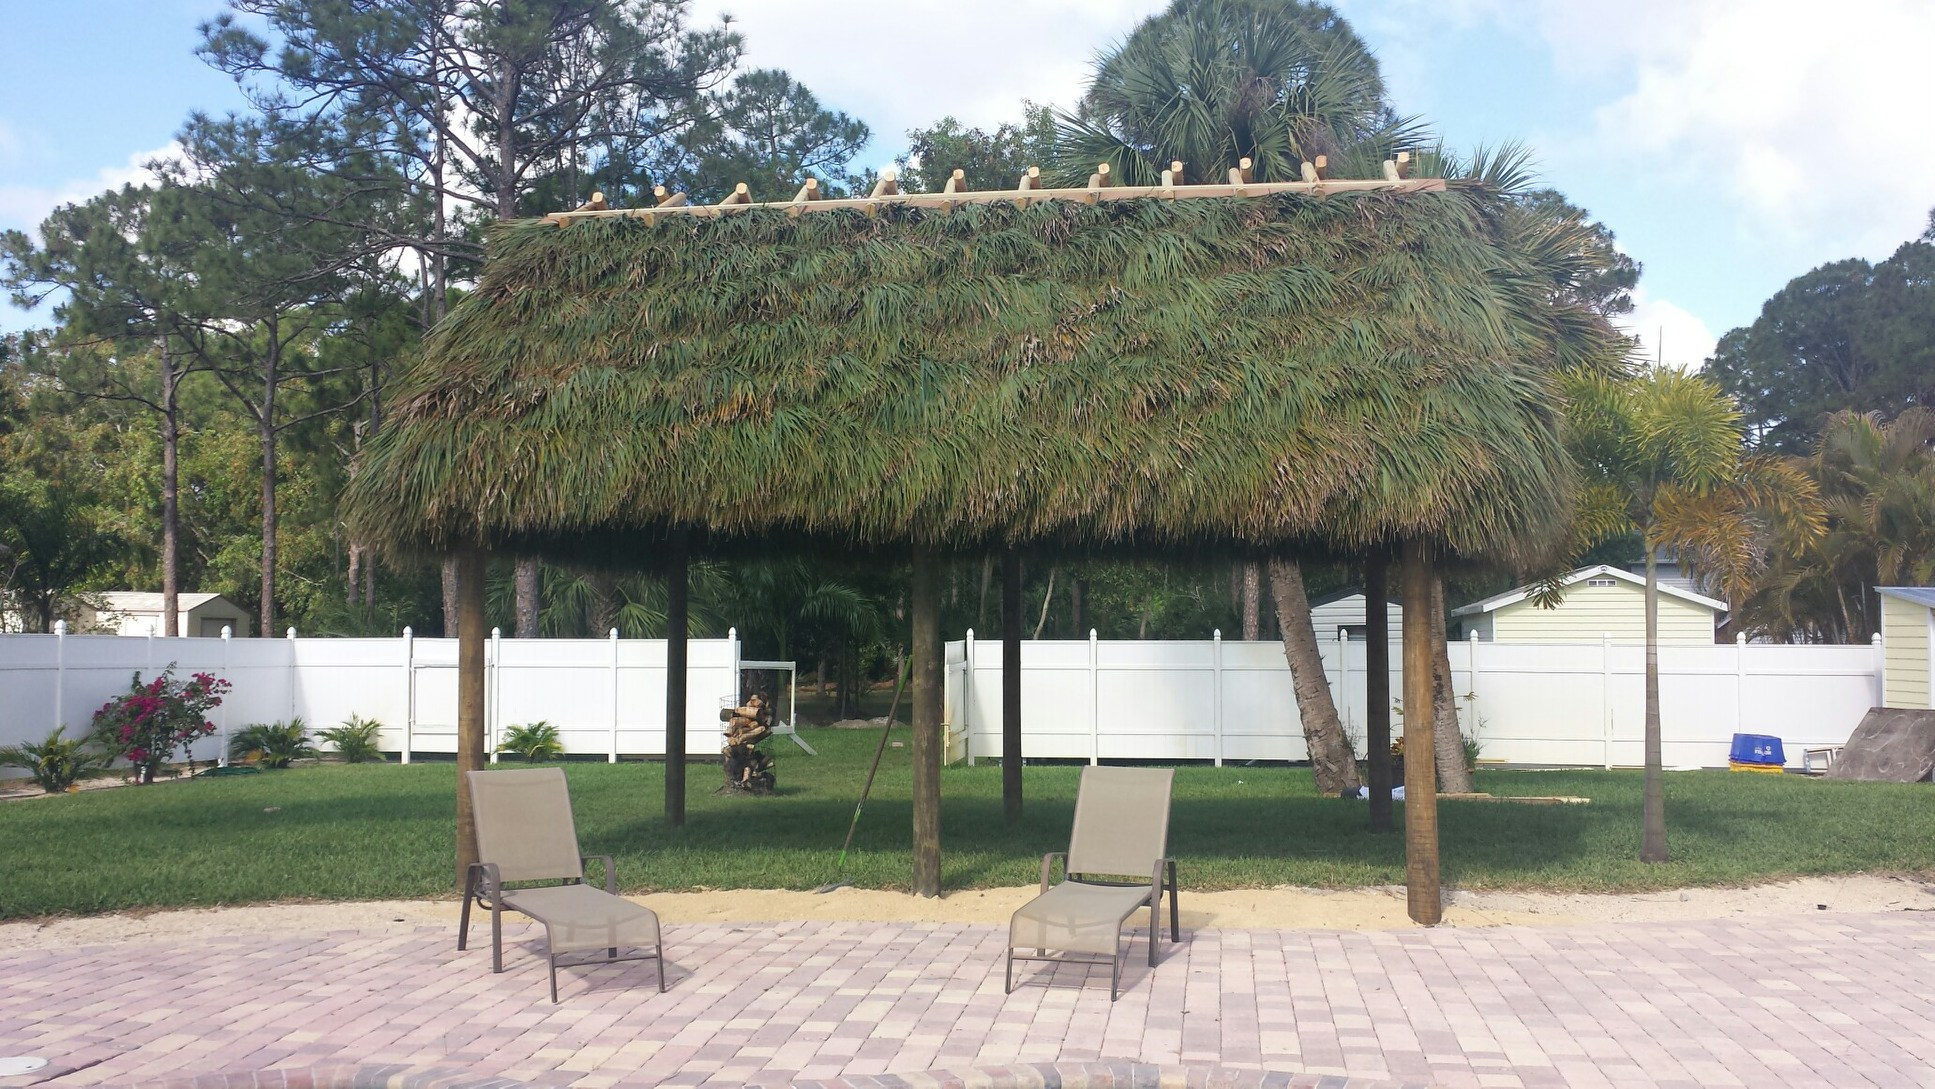 Residental Back Yard Tiki Hut